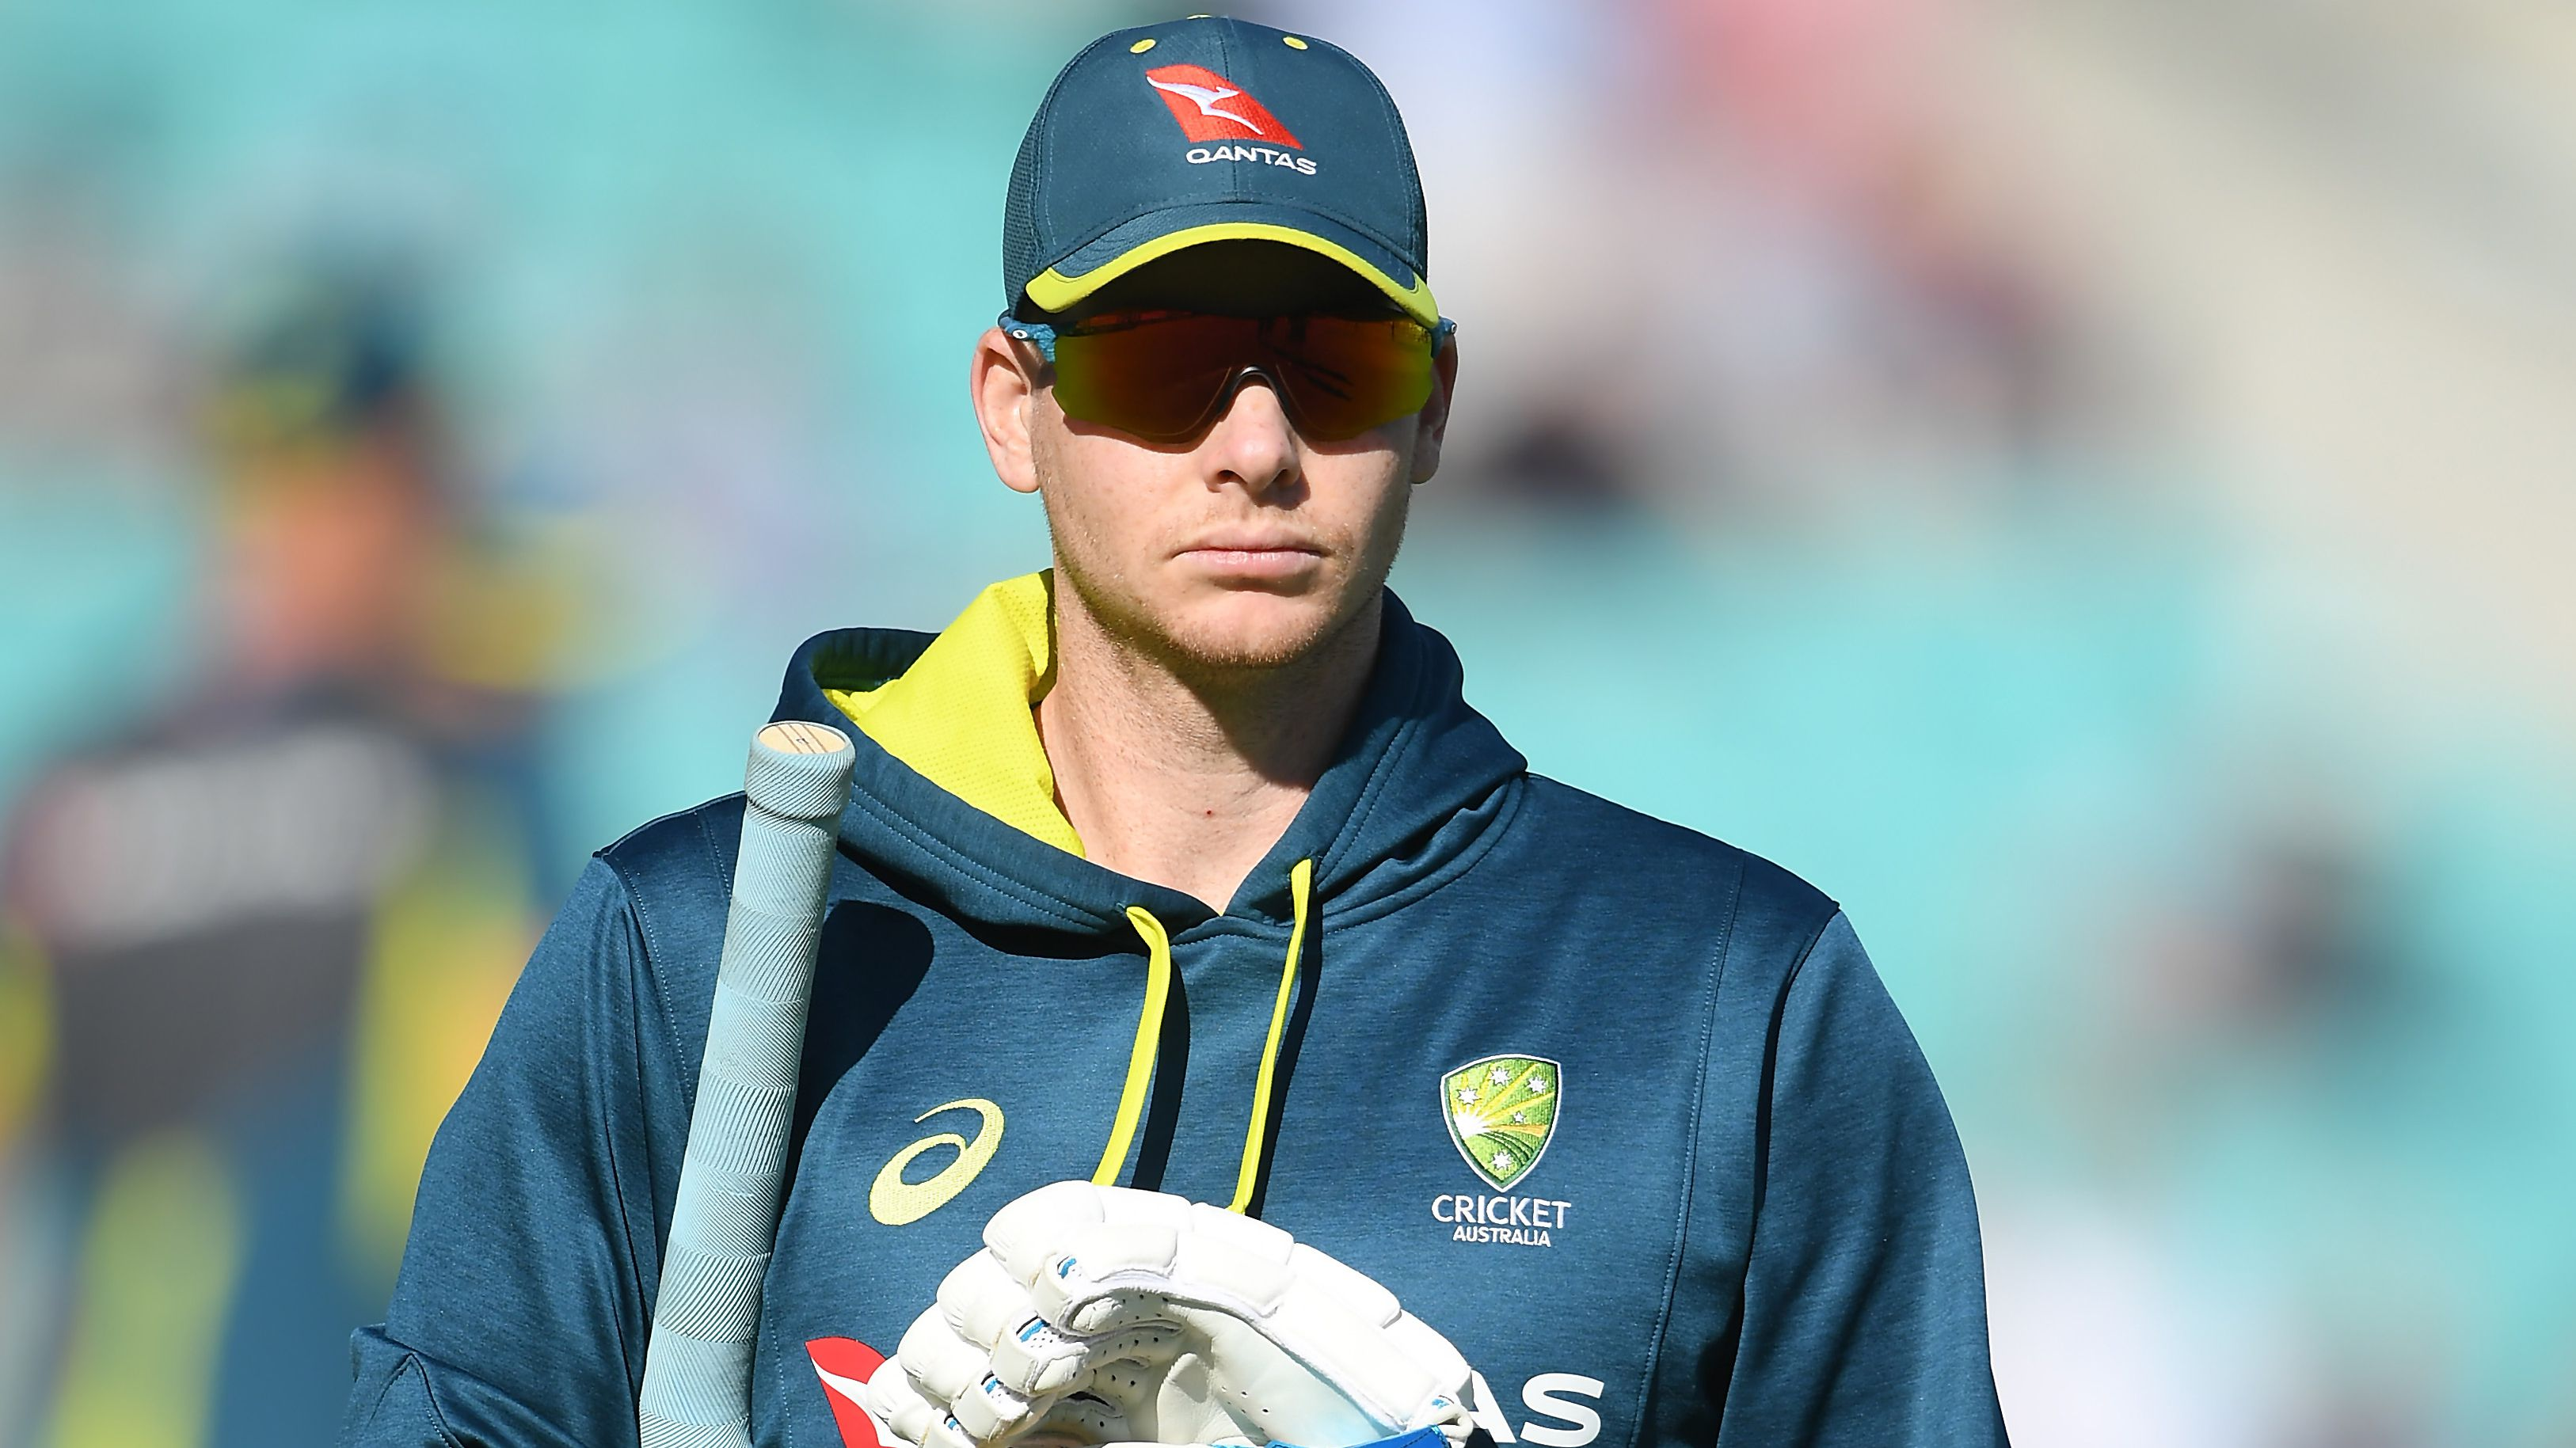 Steve Smith out for duck: American does what Englishmen couldn't